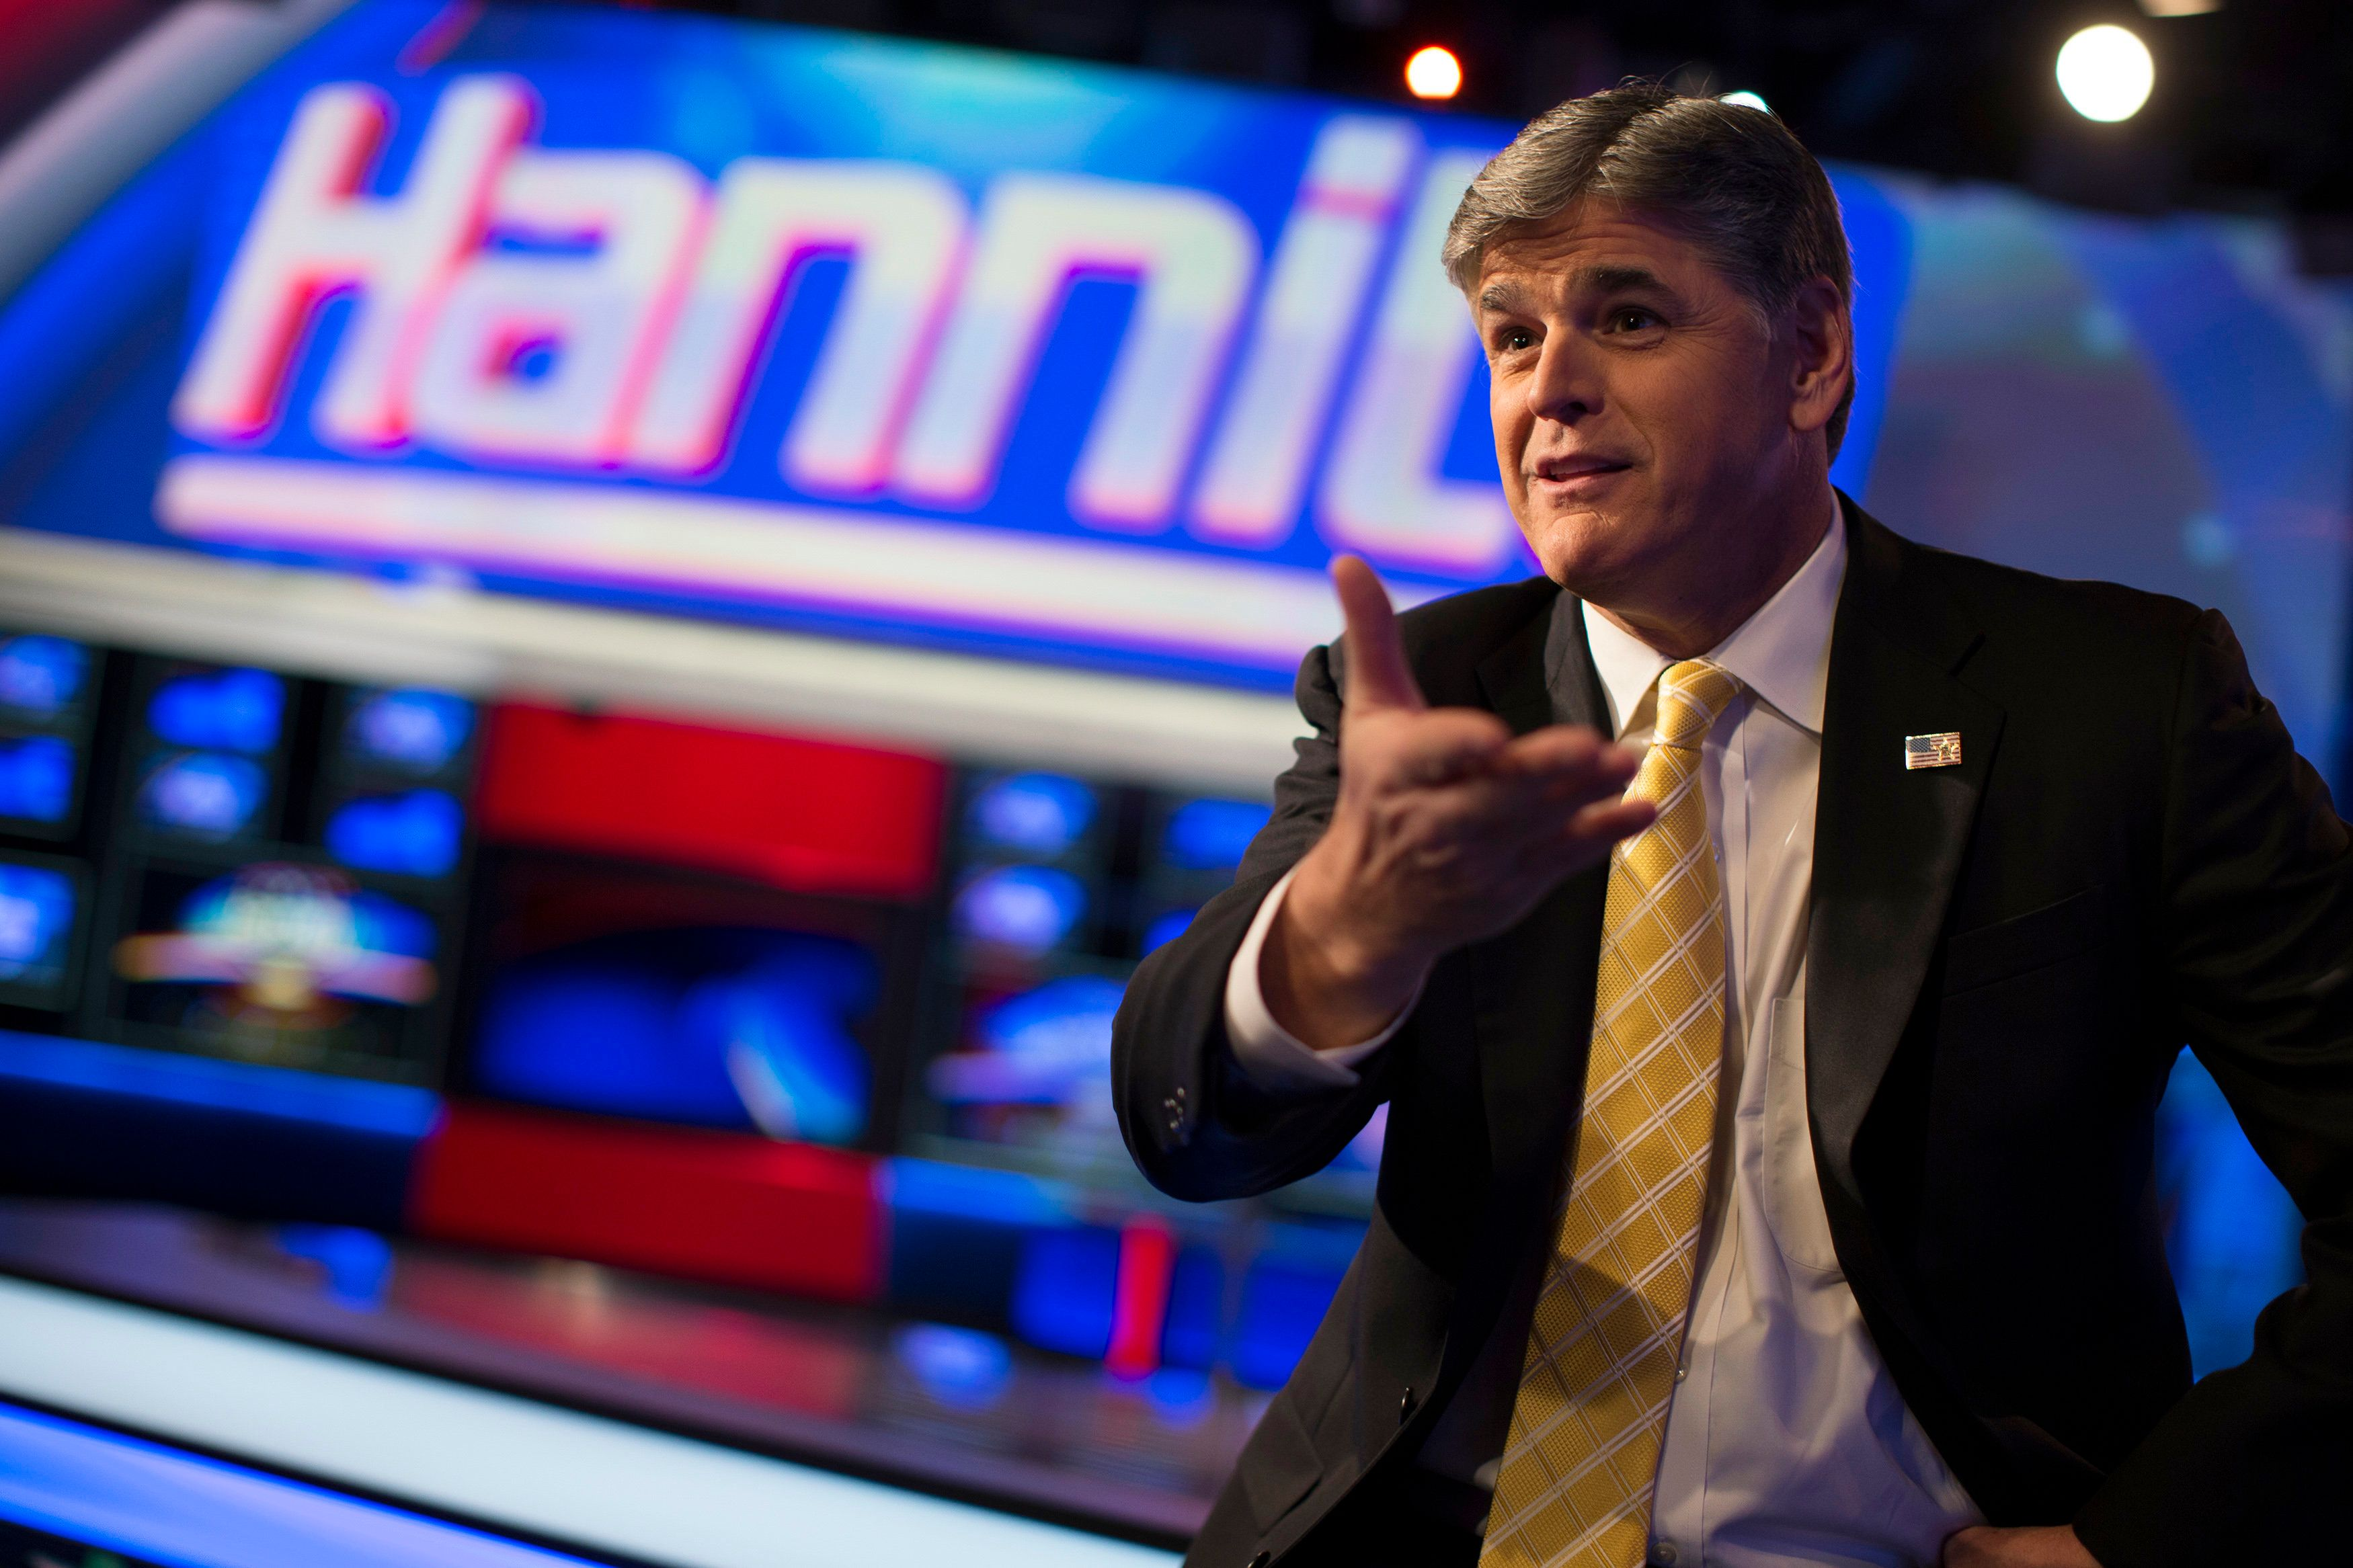 """Fox News Channel anchor Sean Hannity poses for photographs as he sits on the set of his show """"Hannity"""" at the Fox News Channel's studios in New York City, October 28, 2014.  REUTERS/Mike Segar   (UNITED STATES - Tags: MEDIA POLITICS ENTERTAINMENT)"""